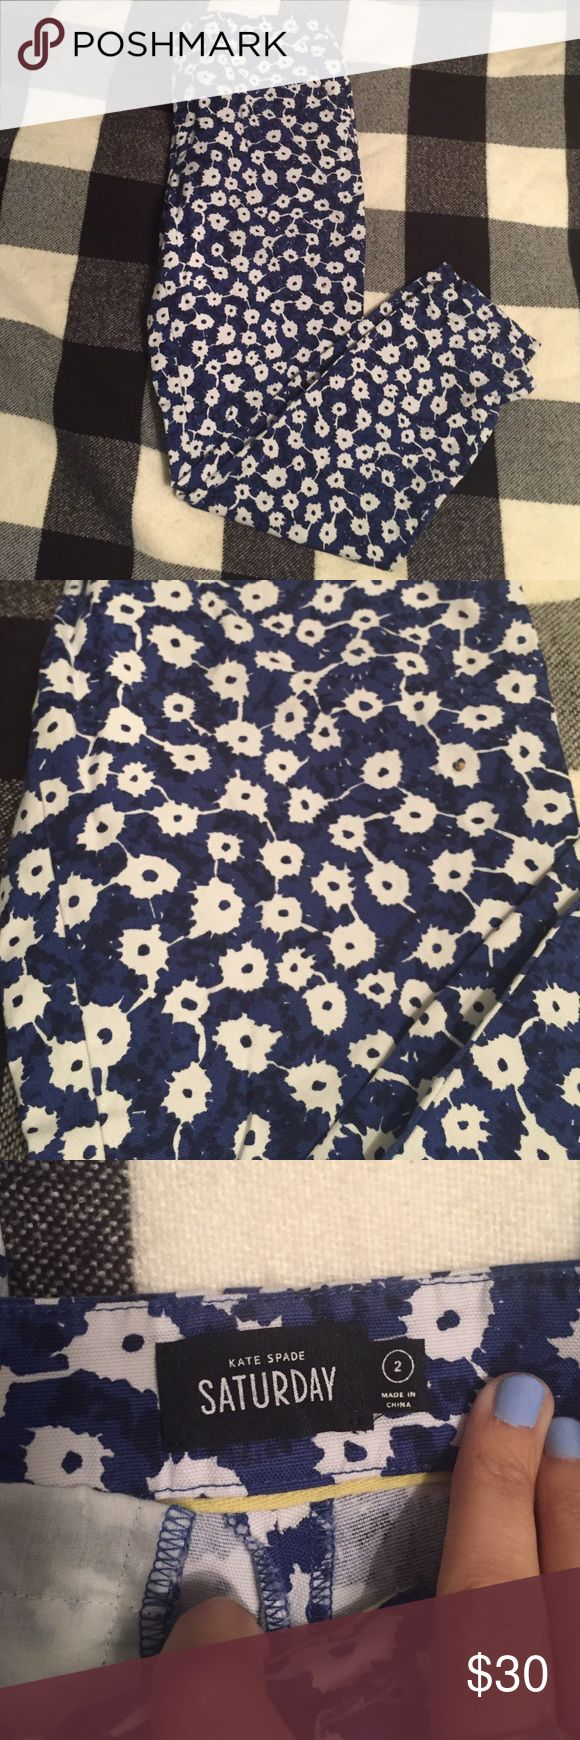 Katr Spade Saturday Pants These are super cozy, chino style printed, cropped pants. In between a Capri length and ankle length. Kate spade Saturday was an extension of Kate spade for more lounge, casual clothes that is no longer running. kate spade Pants Ankle & Cropped